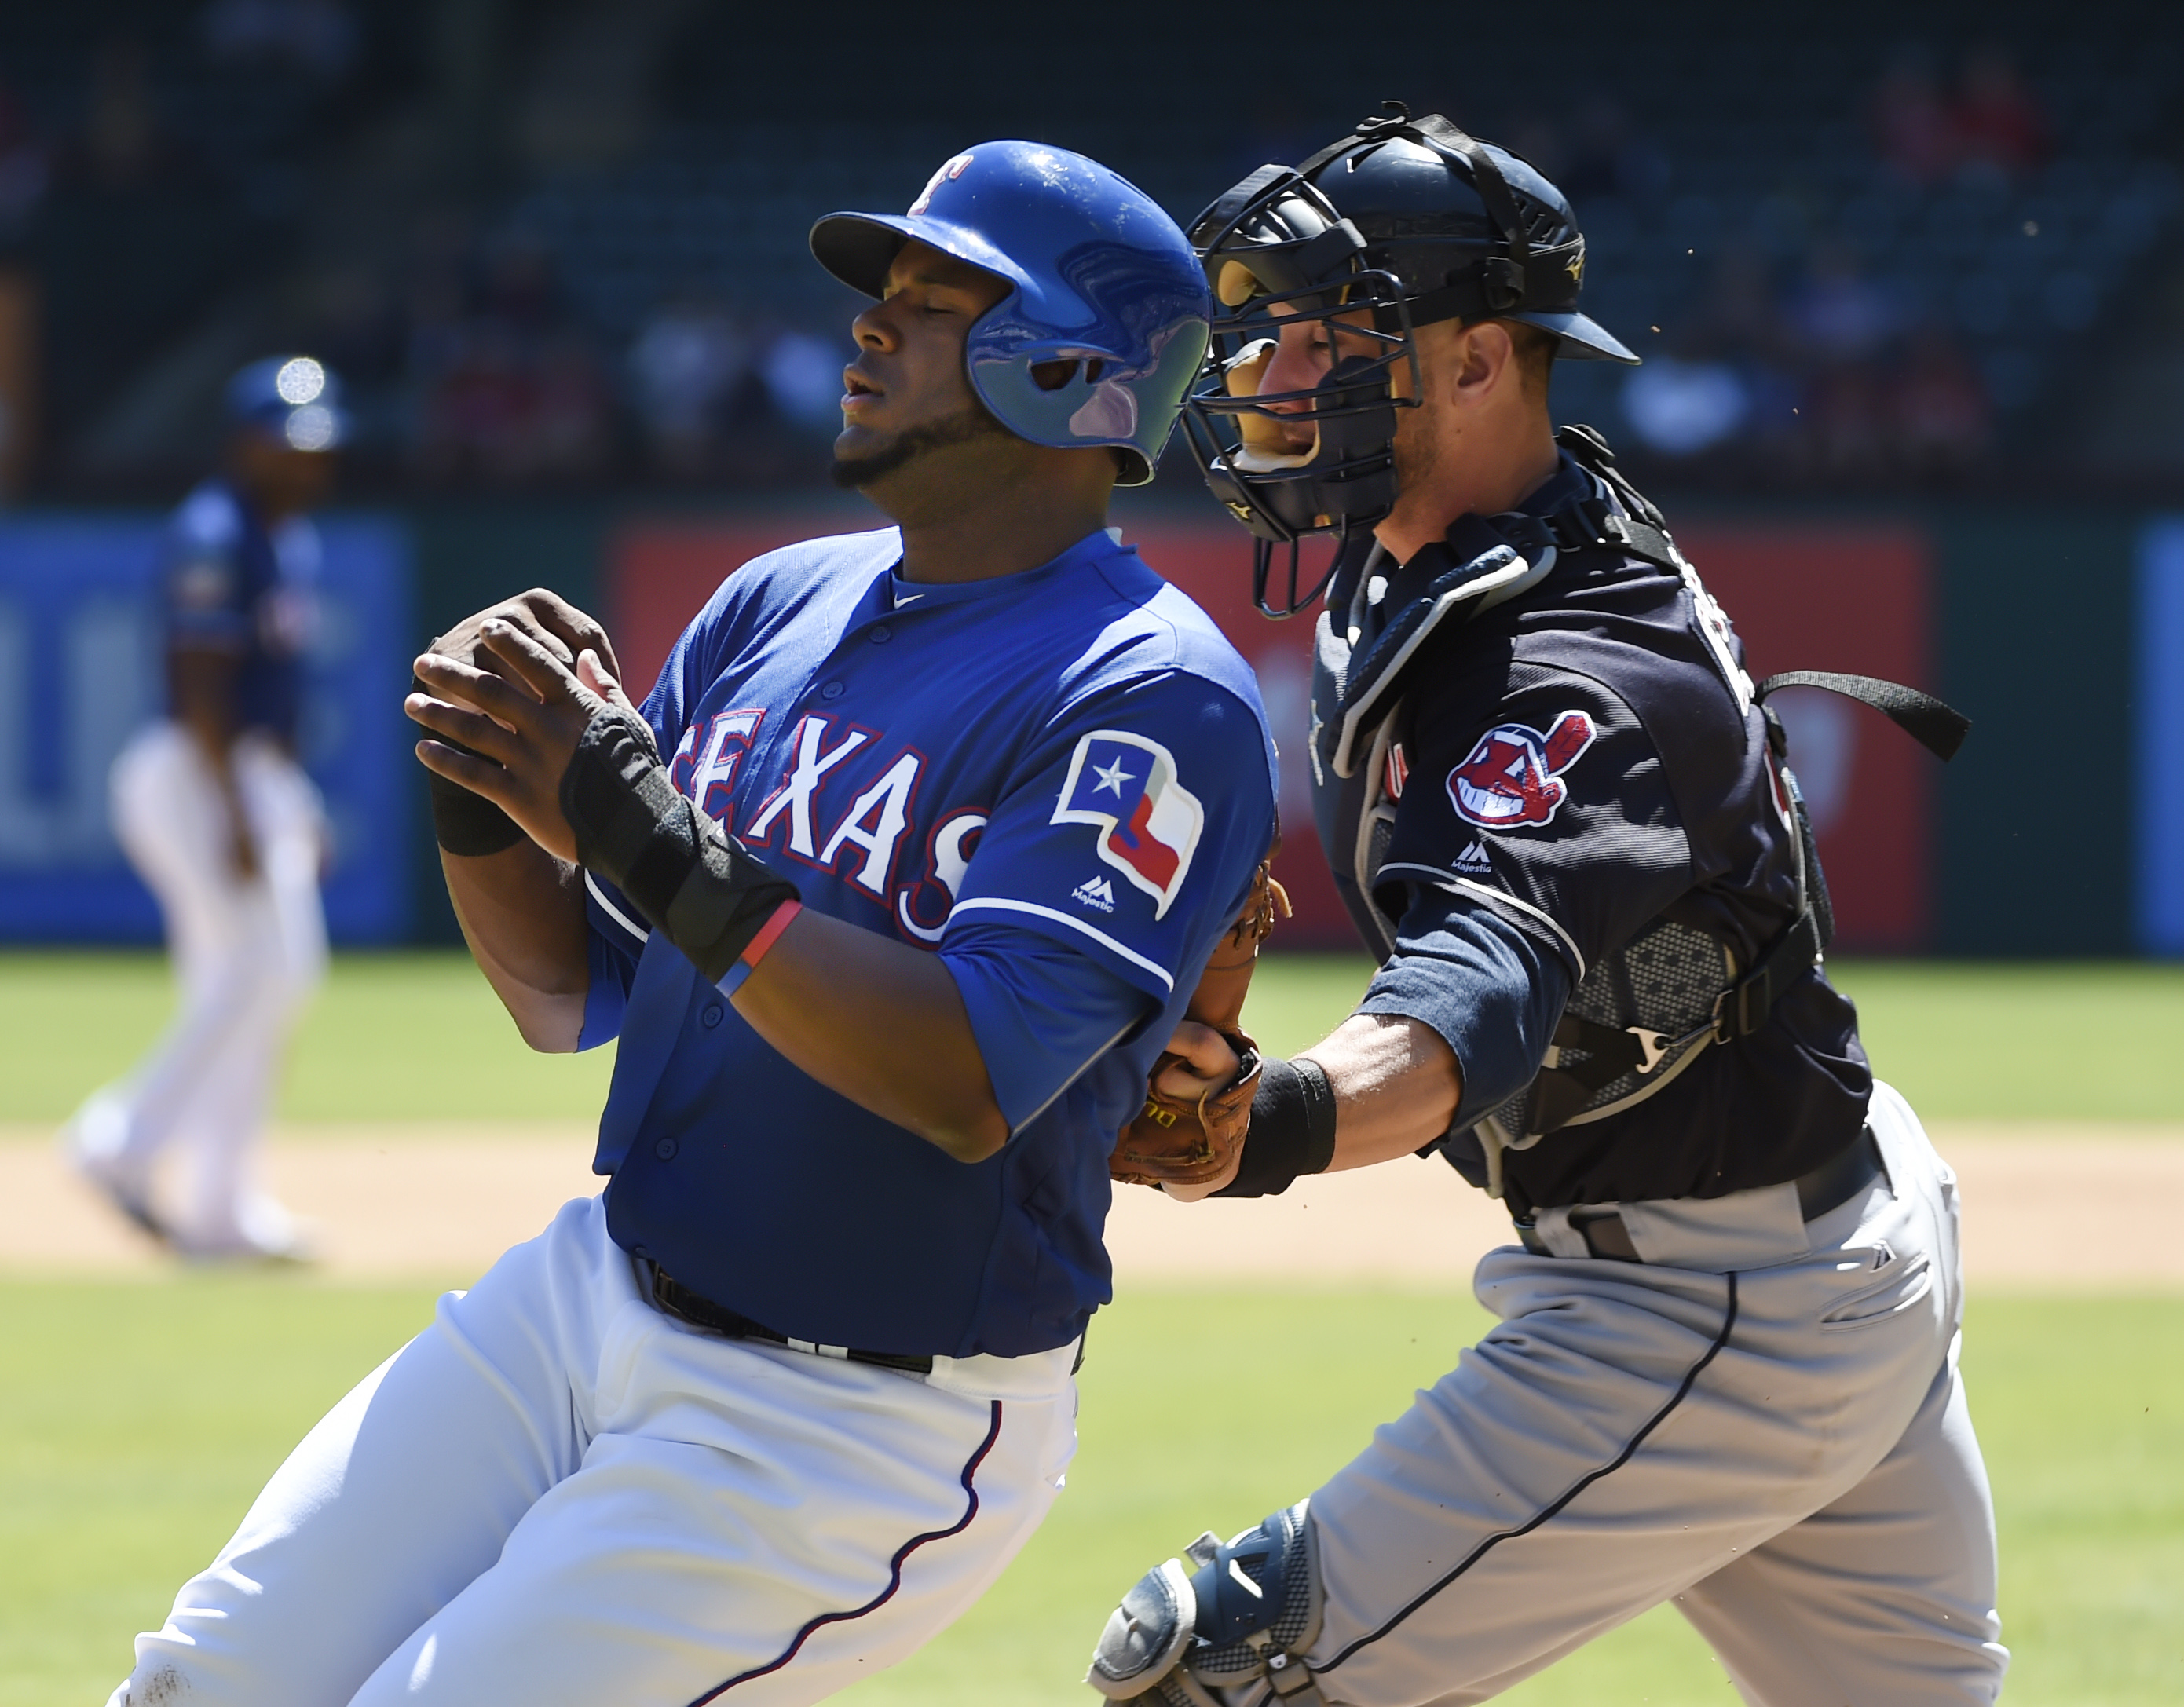 Texas Rangers second baseman Hanser Alberto (2) is tagged out by Cleveland Indians catcher Yan Gomes (10) on a rundown to complete a double play during the second inning of their exhibition baseball game in Arlington, Texas, on Saturday, April 2, 2016. (A